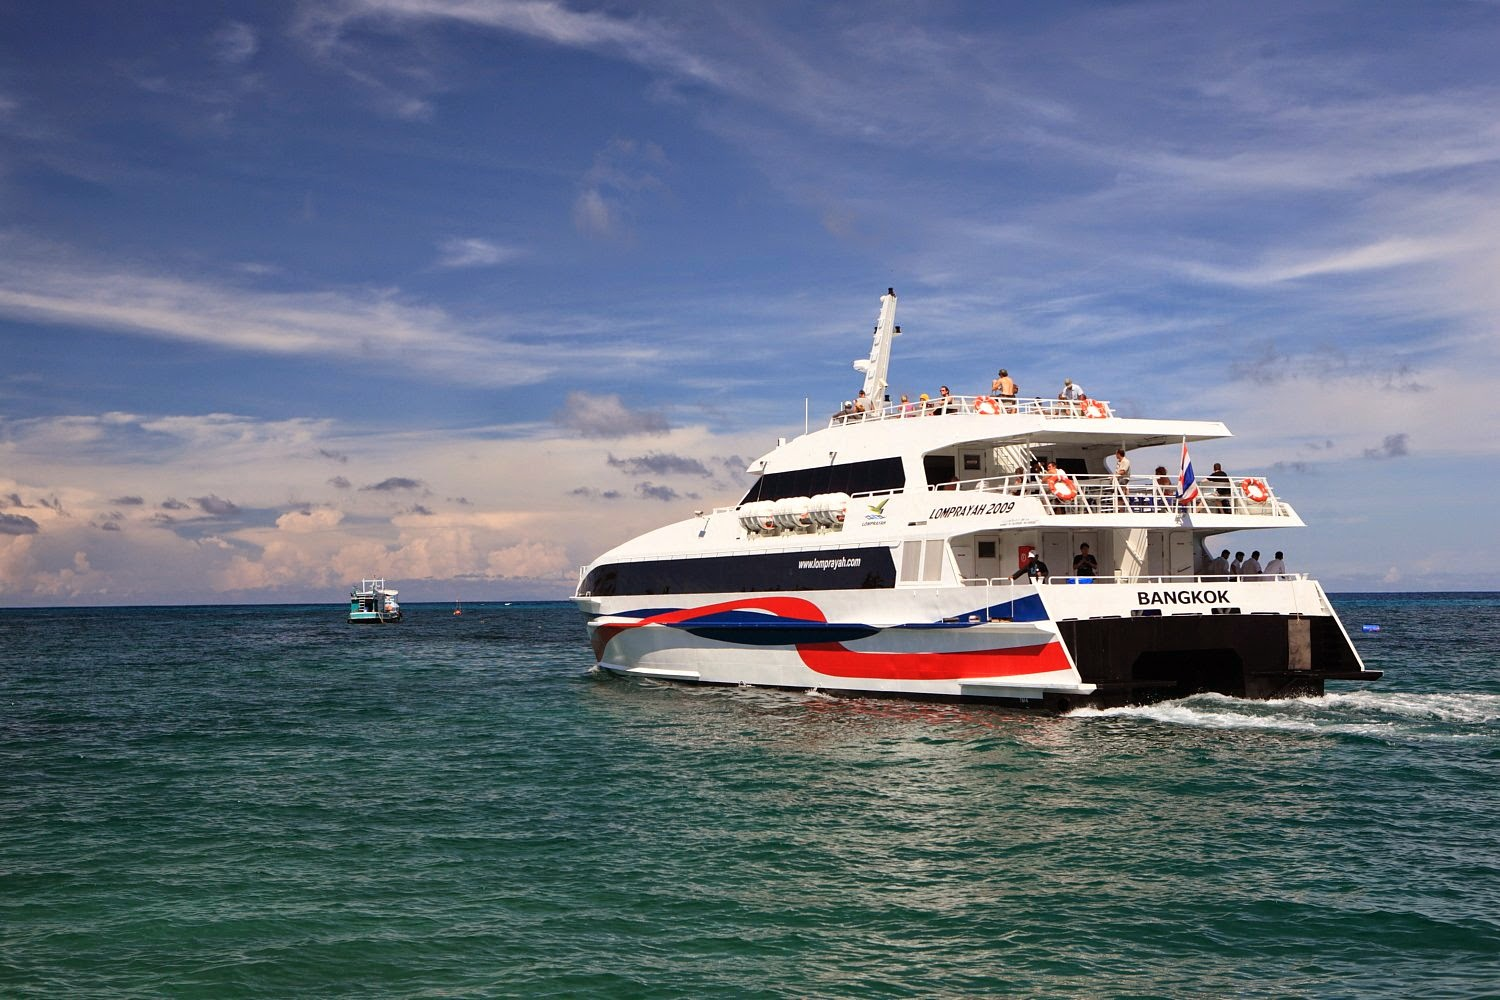 Travel from Chumphon to Koh Samui by VIP Coach and High Speed Catamaran